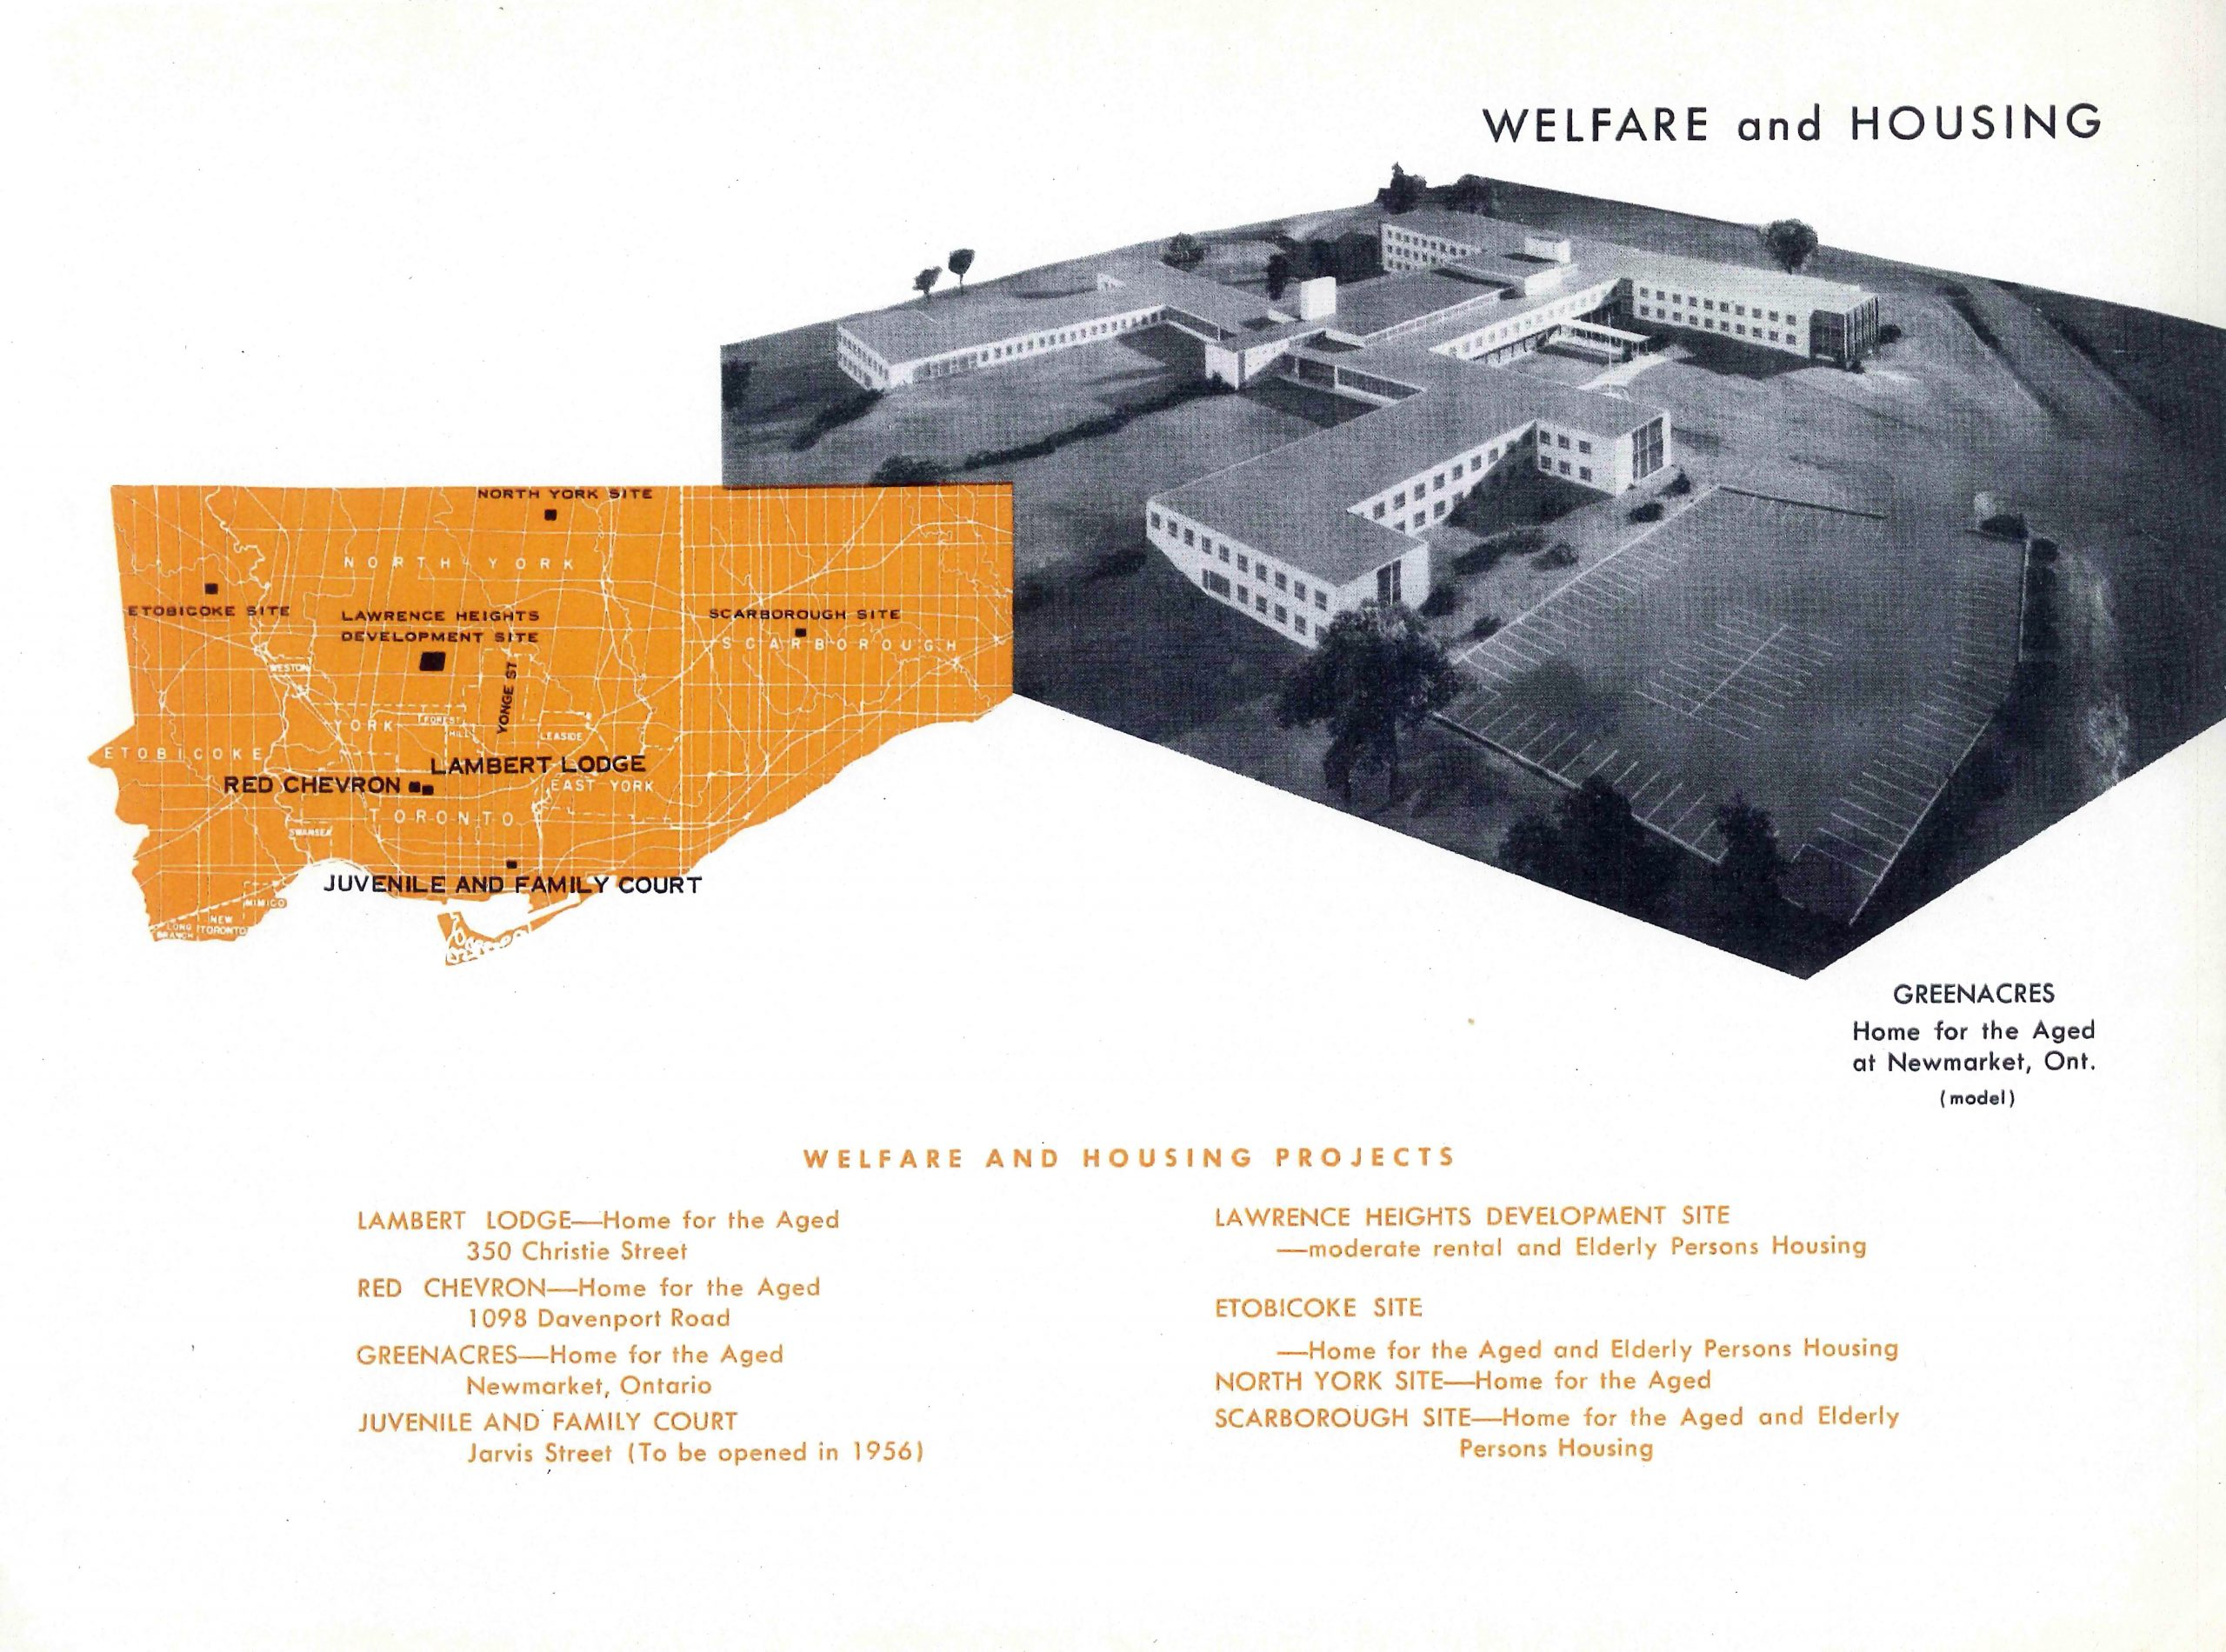 map of toronto and model of residential facility